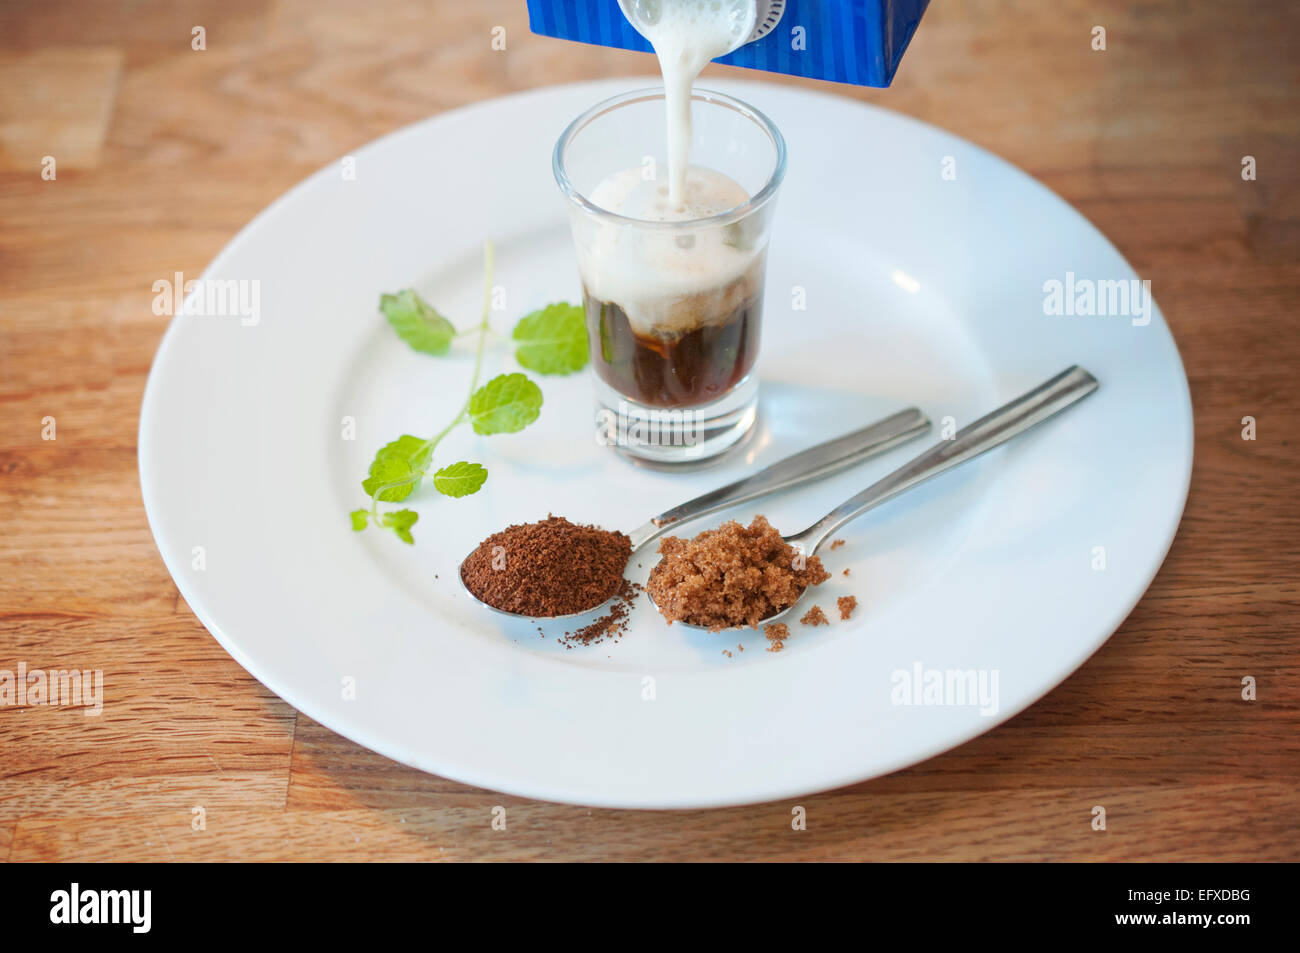 Homemade specialty coffee beverage with fresh mint, brown sugar and frothy soy milk. Serve chilled over ice or warm. Stock Photo